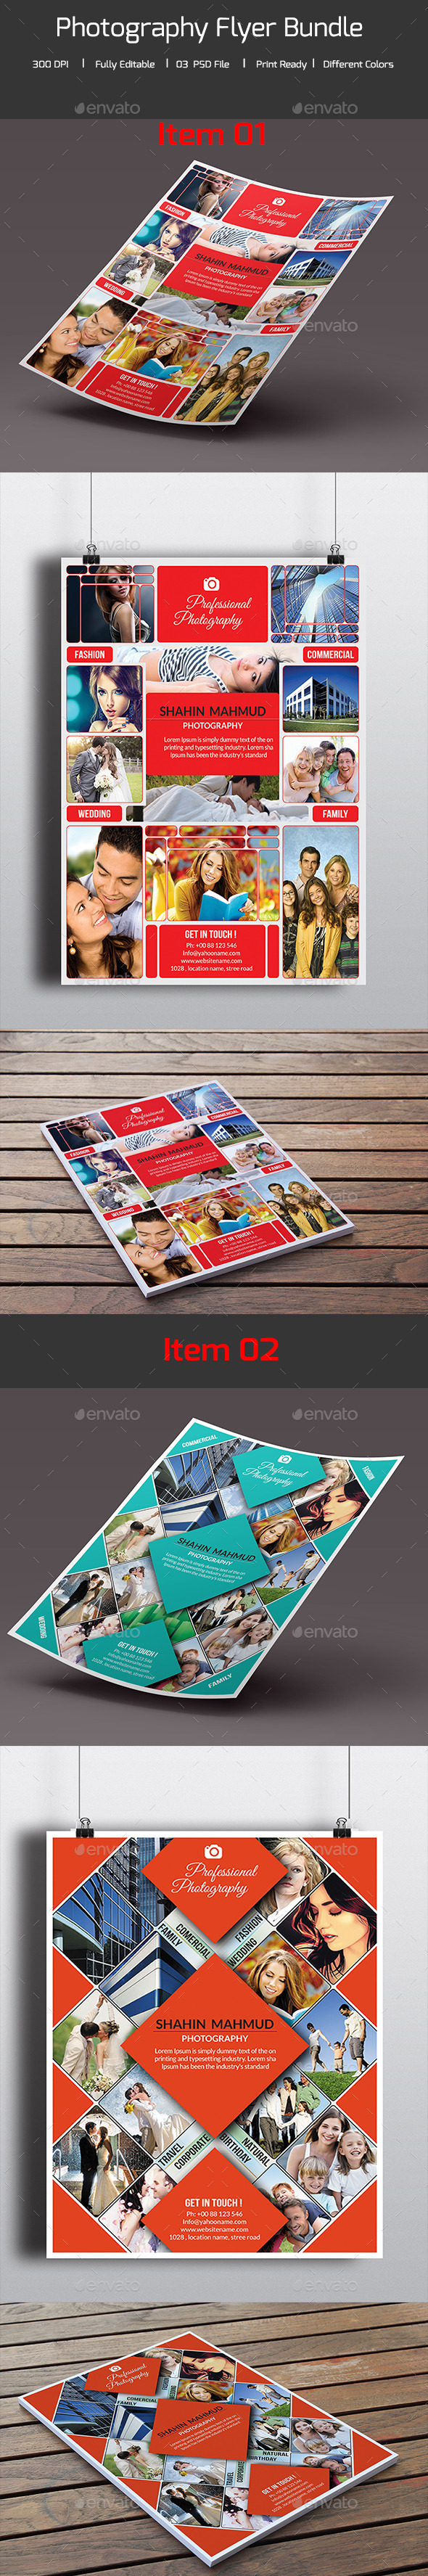 Bundle - 02 in 01 Photography Flyer  - Commerce Flyers